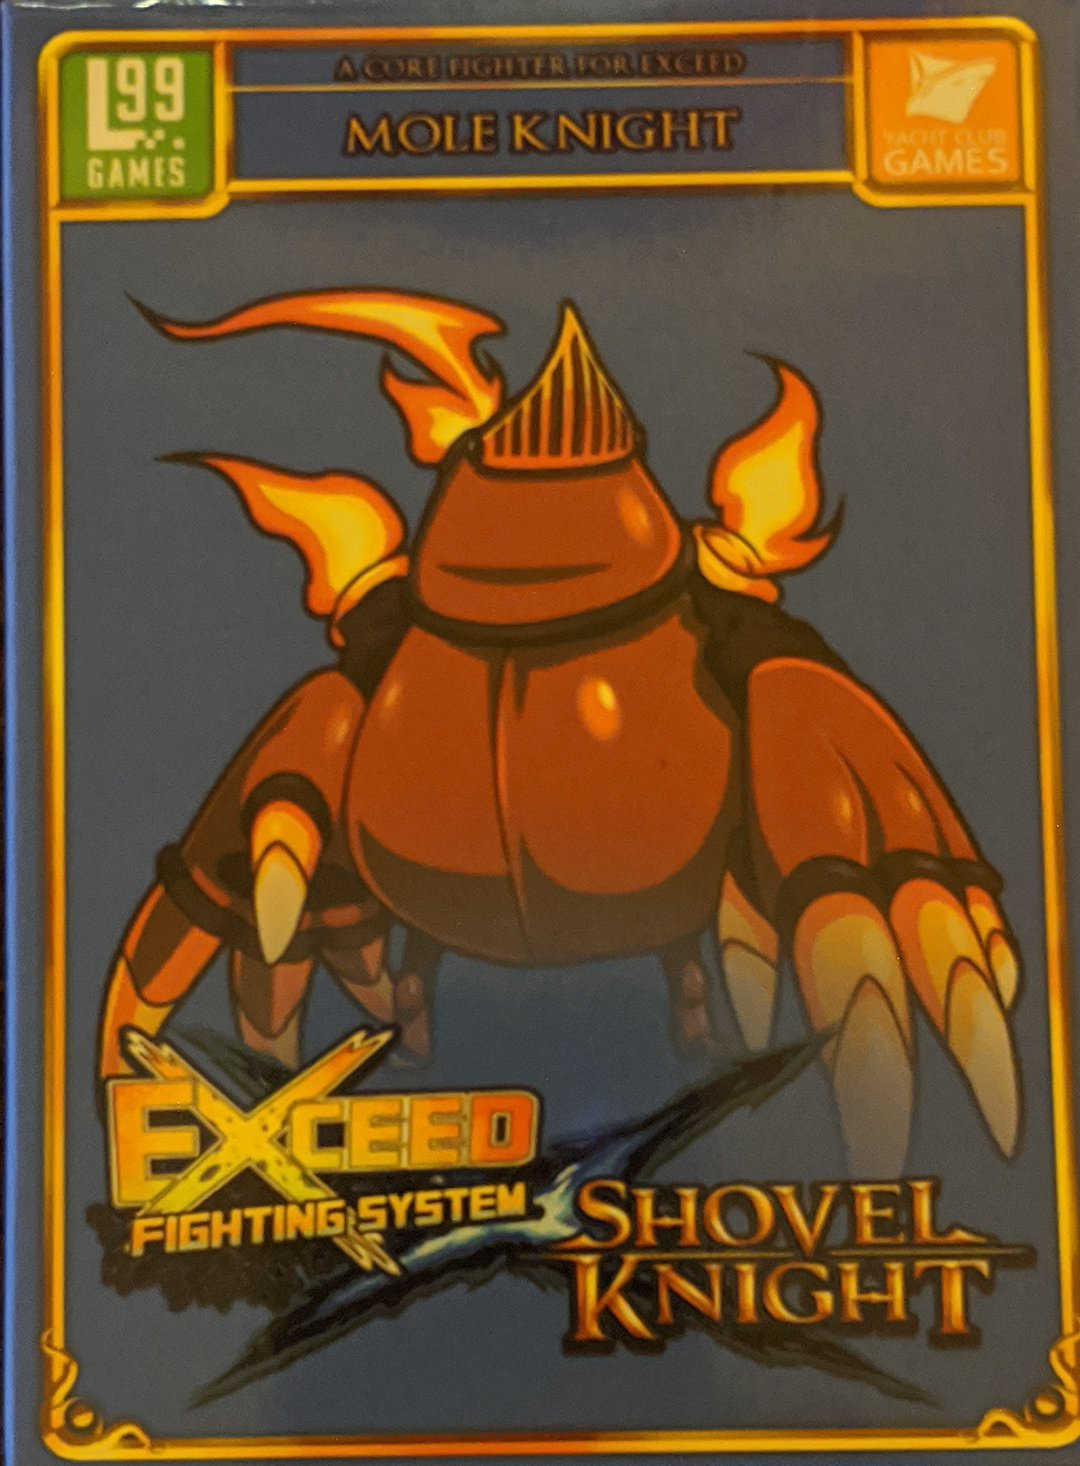 exceed shovel knight mole